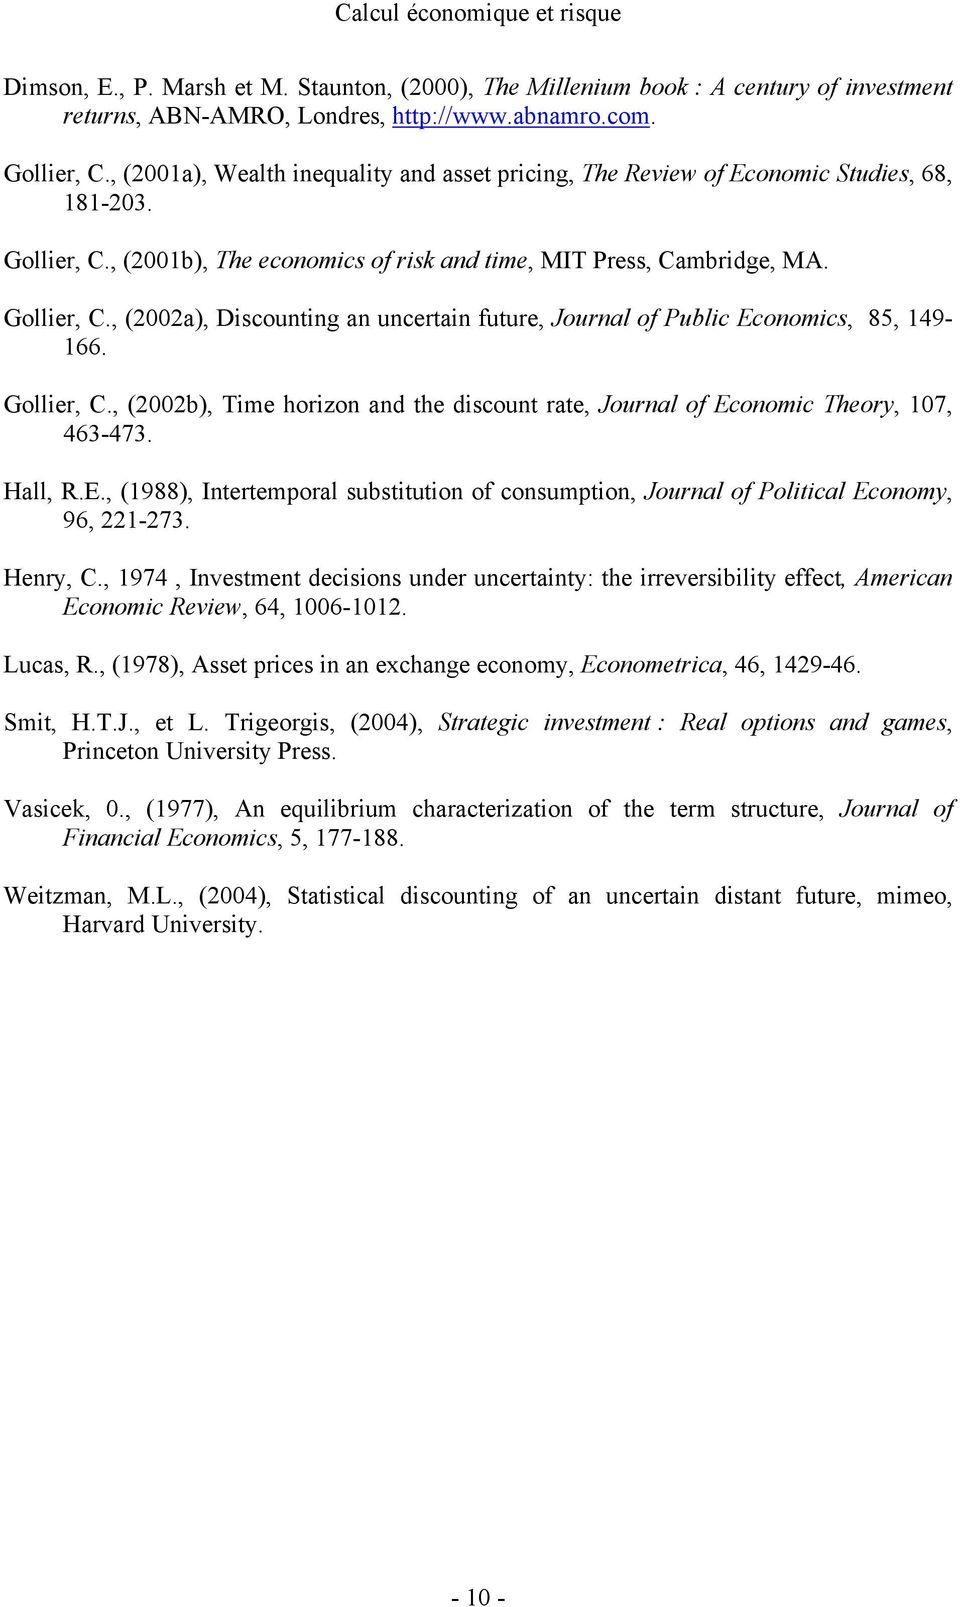 Gollier, C., (22b), Time horizon and he discoun rae, Journal of Economic Theory, 7, 463-473. Hall, R.E., (988), Ineremporal subsiuion of consumpion, Journal of Poliical Economy, 96, 22-273. Henry, C.